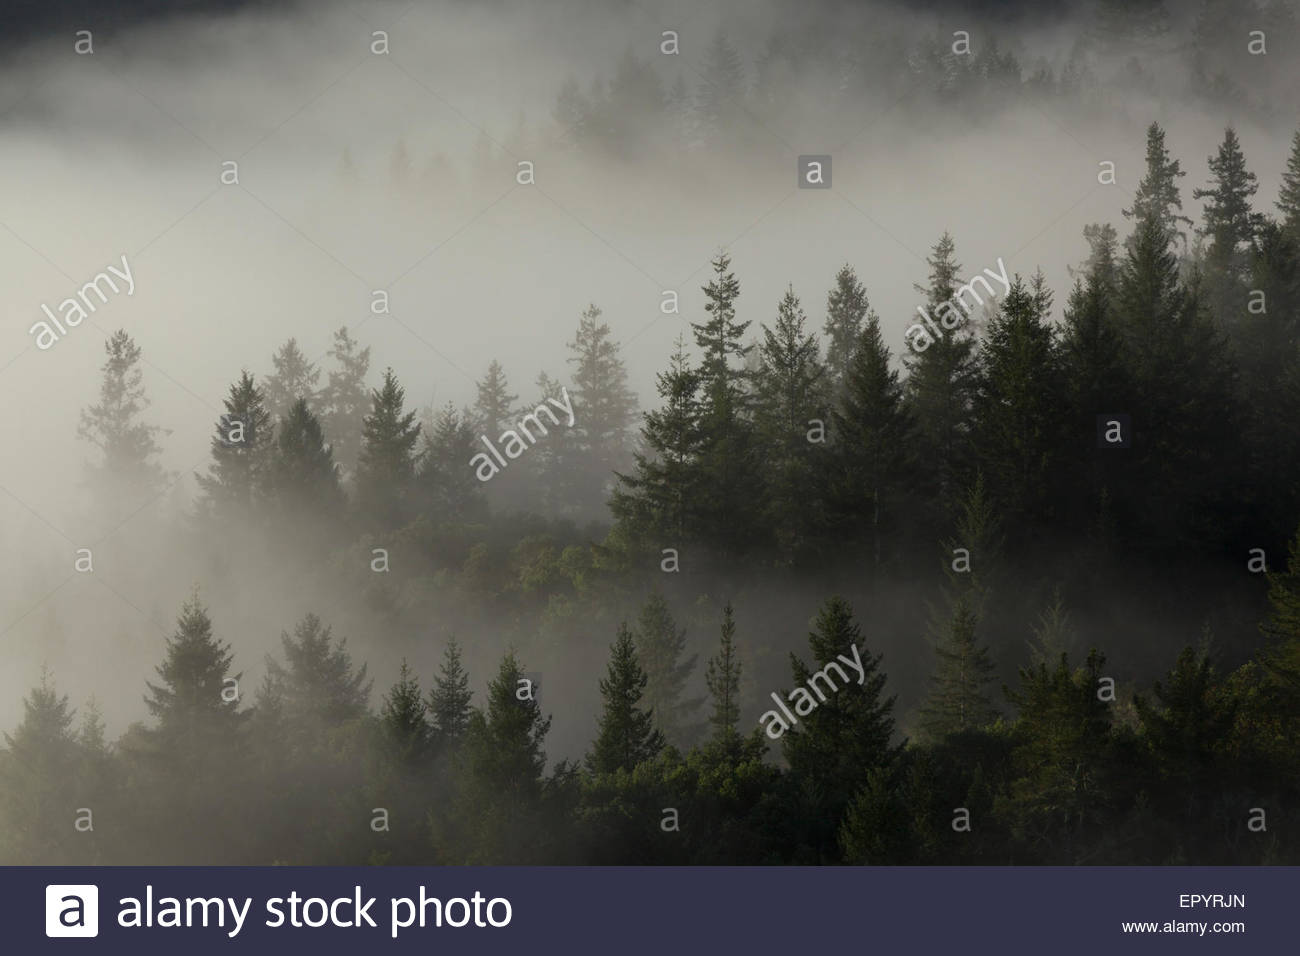 Foggy Forest at Mount Tamalpais Watershed, Marin County, California - Stock Image